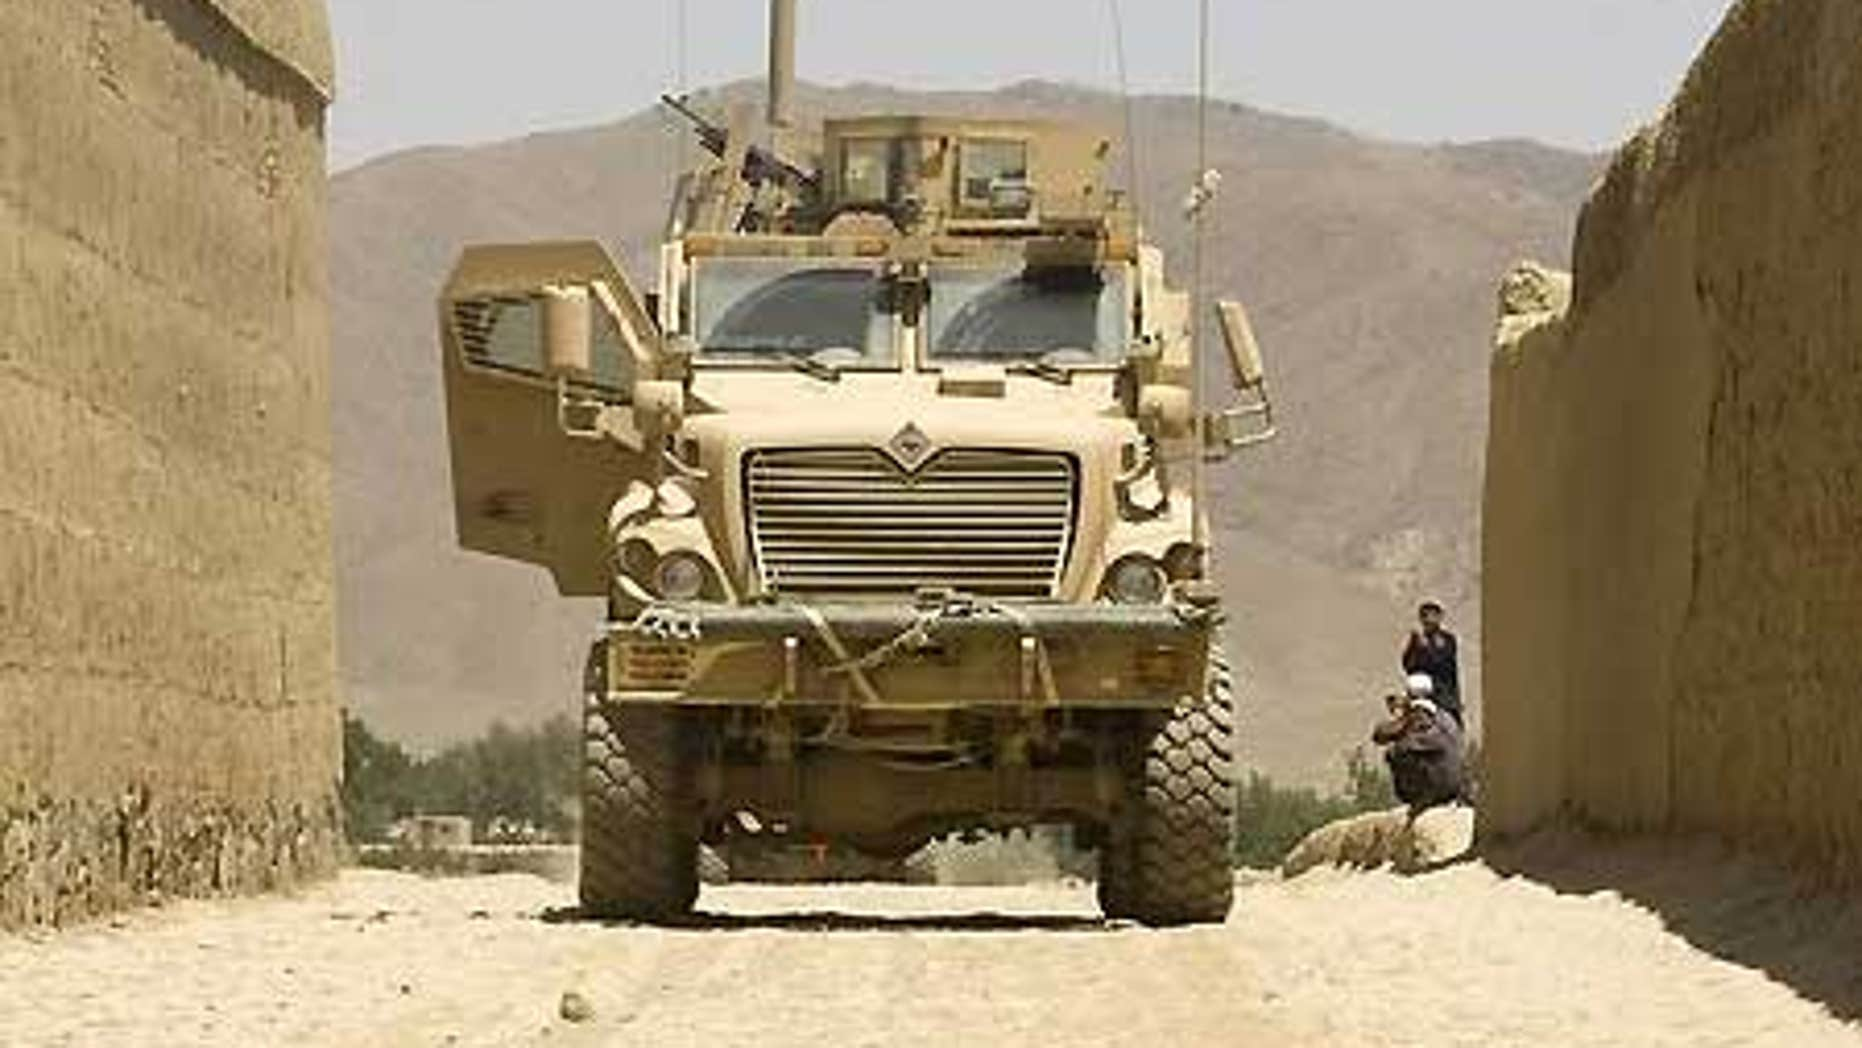 July 22: U.S. army Mine Resistant Ambush Protect armored vehicle parks in Logar Province, Afghanistan.